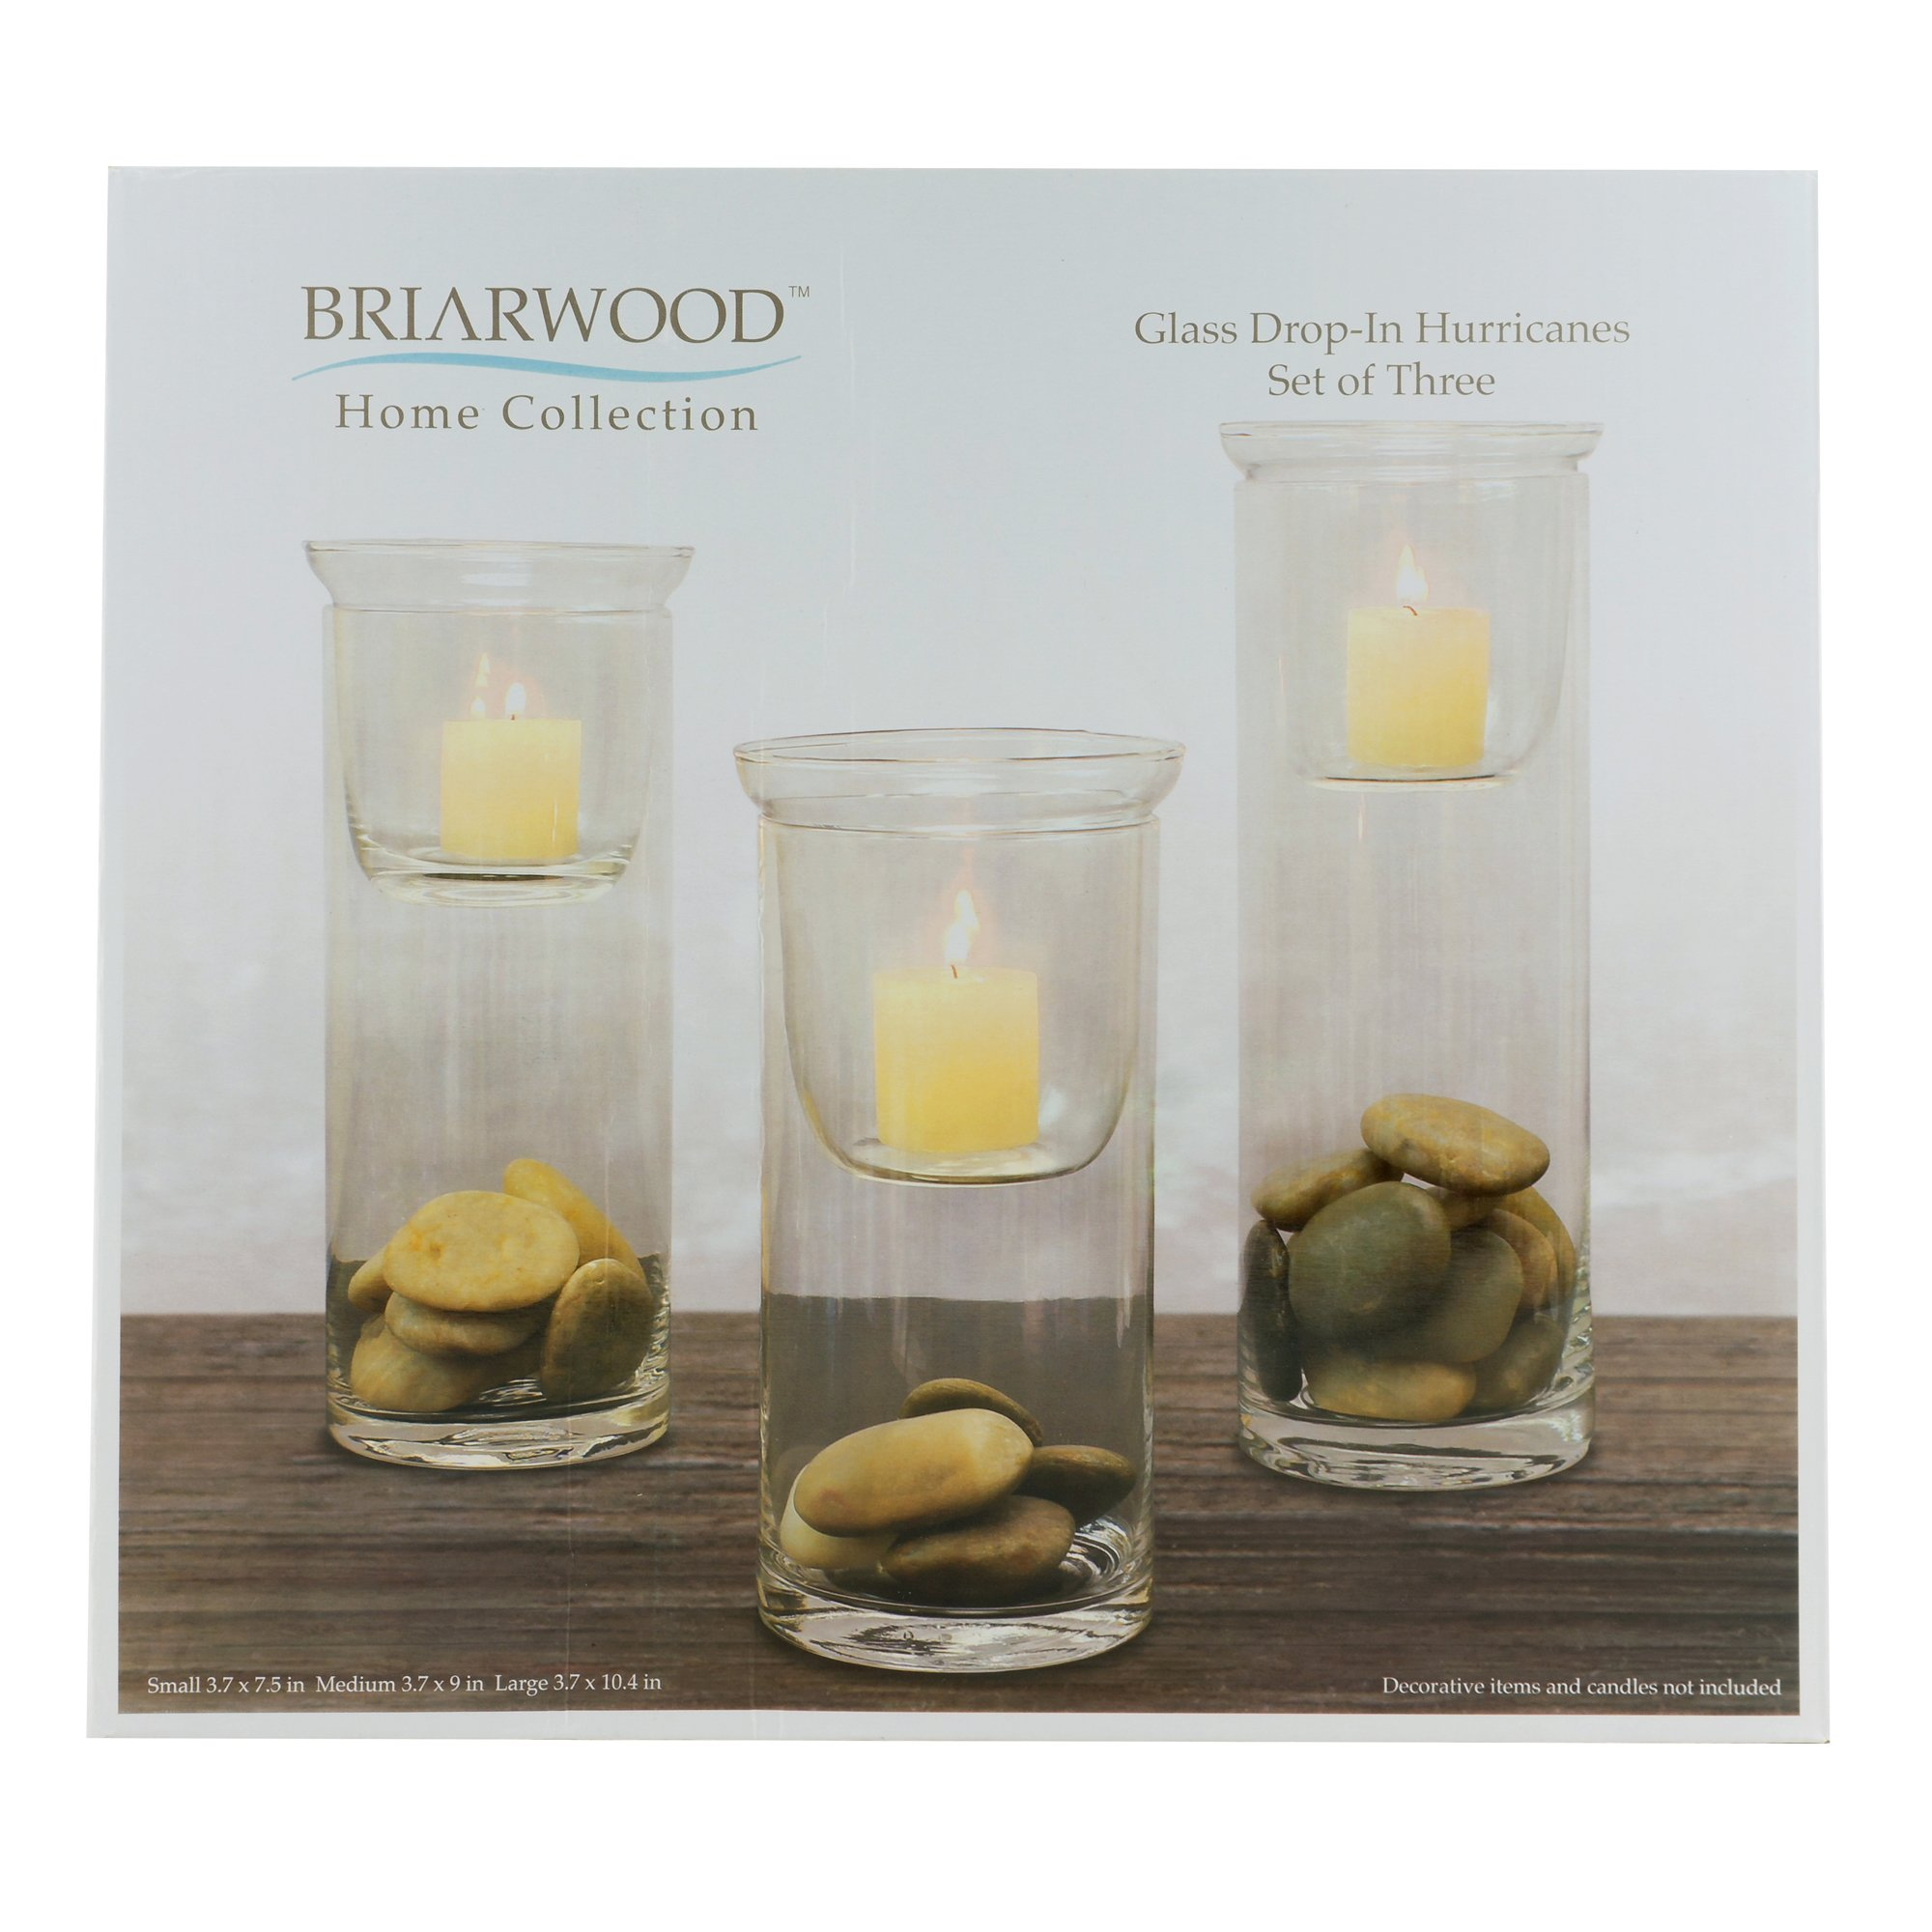 Stonebriar Cylinder Glass Hurricane Set with Removable Votive Candle Holder Inserts, Traditional Home Decor for Dining Room, Living Room, and Bedroom, Decorative Centerpiece by Stonebriar (Image #4)